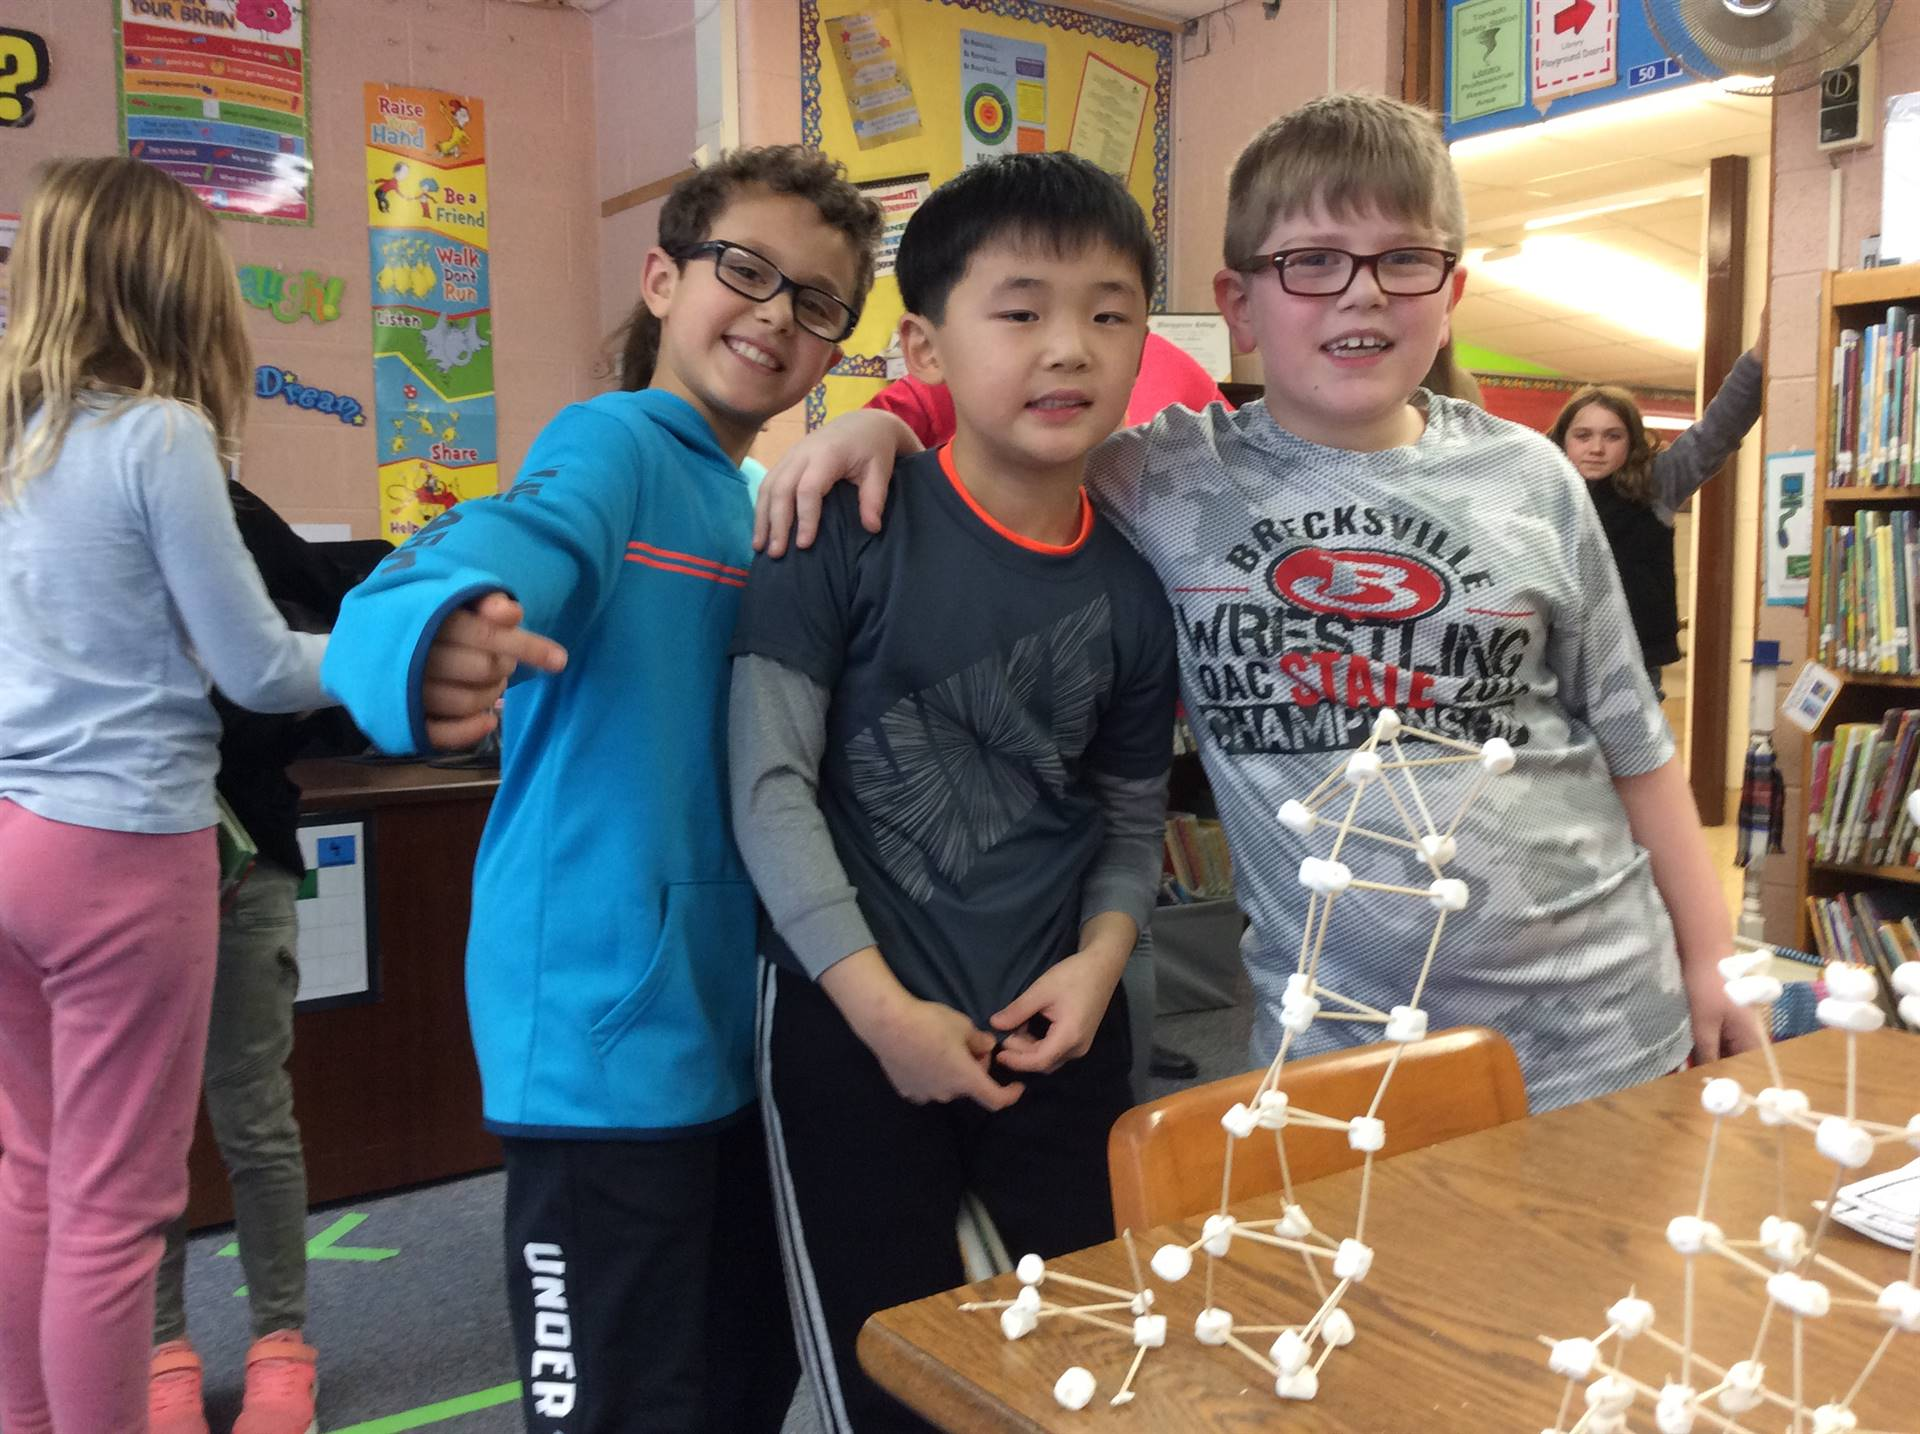 Creators of the tallest structure in Miss Janko's room!